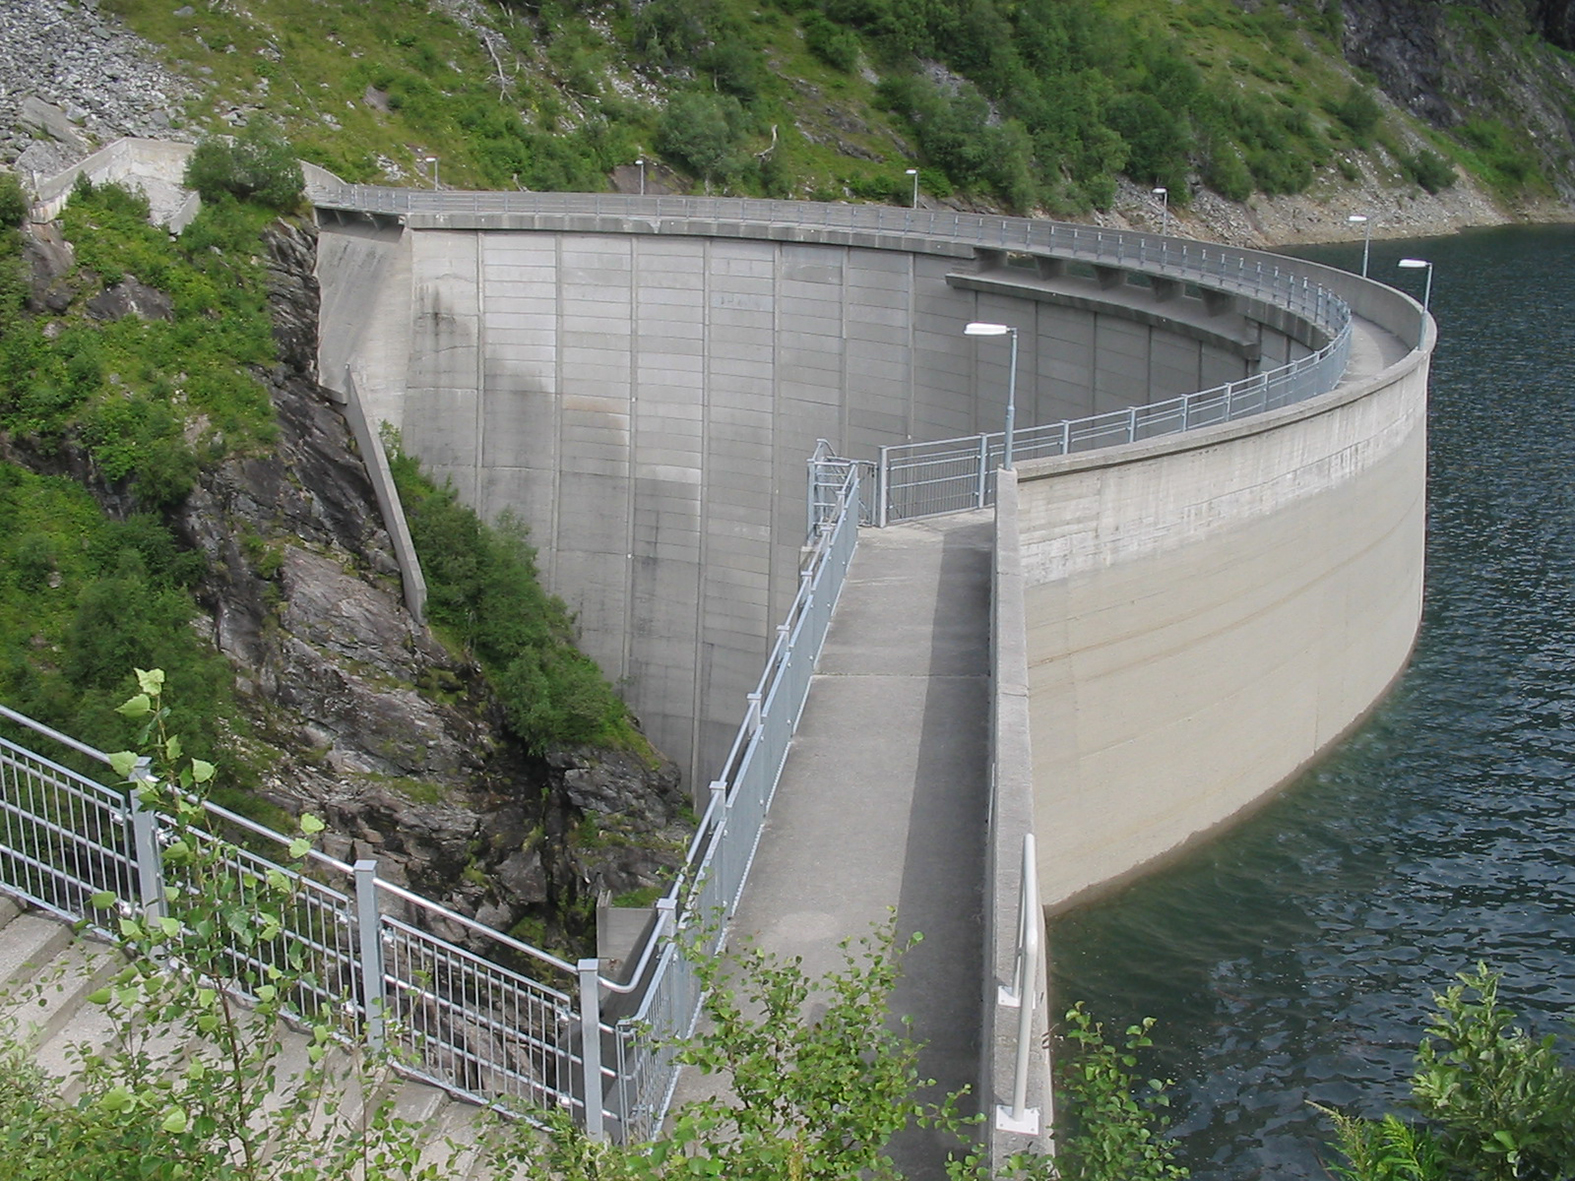 Figure 1: The Zakarias dam (completed 1969). Photography by Vidar Iversen.